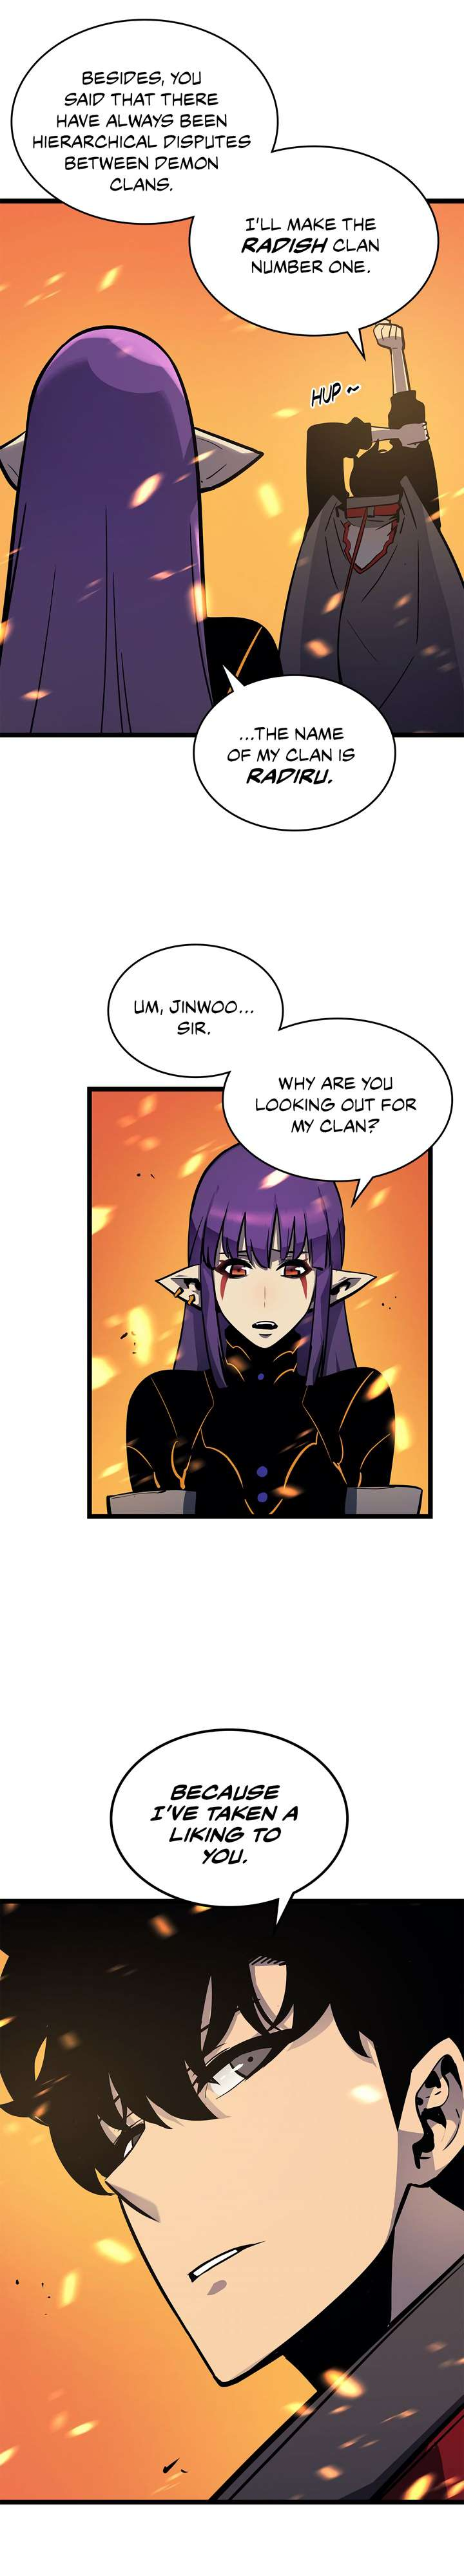 Solo Leveling Chapter 84 Page 29